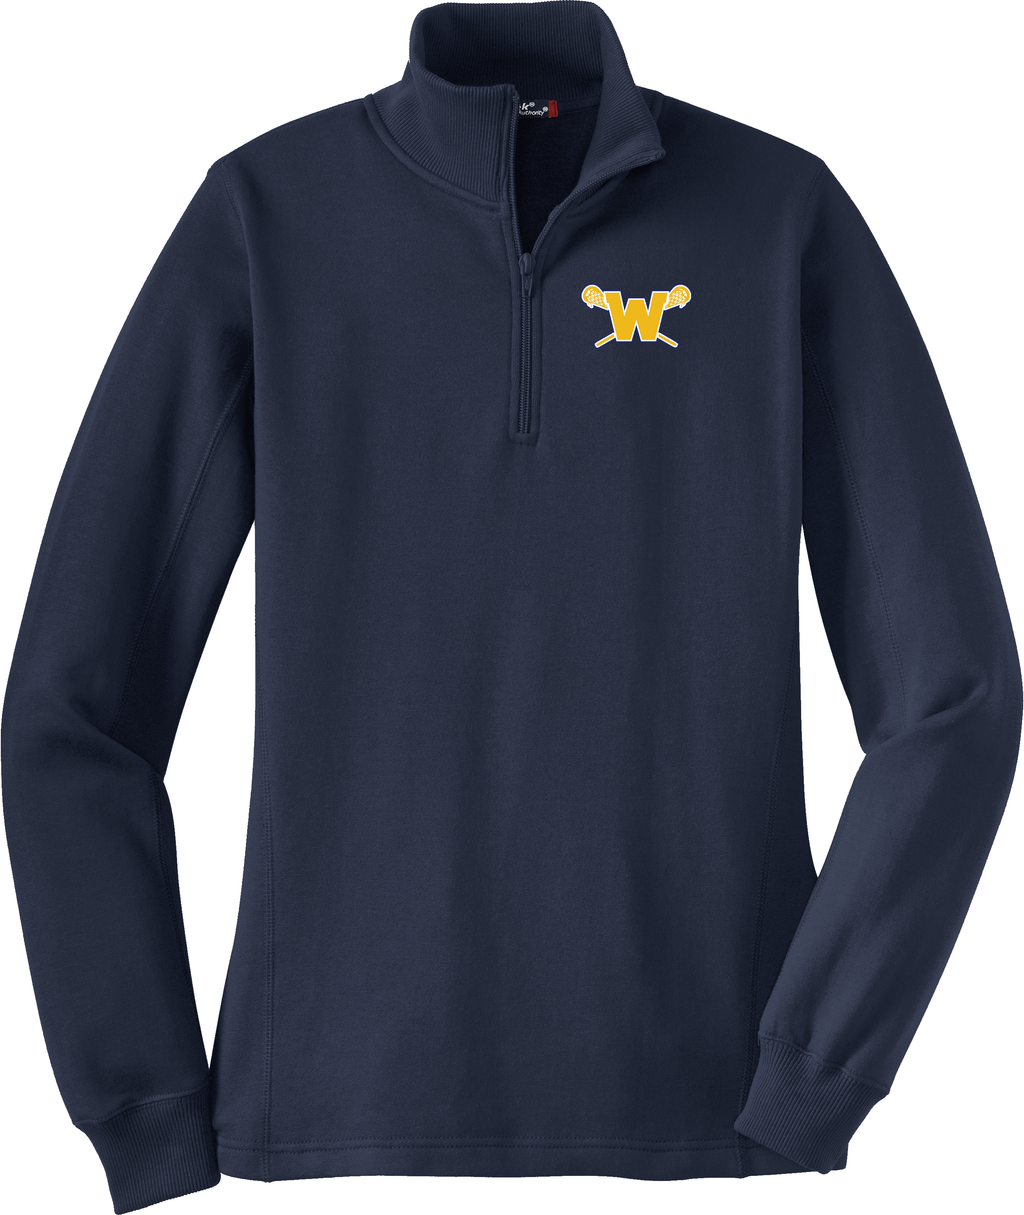 Webster Lacrosse Navy Women's 1/4 Zip Fleece